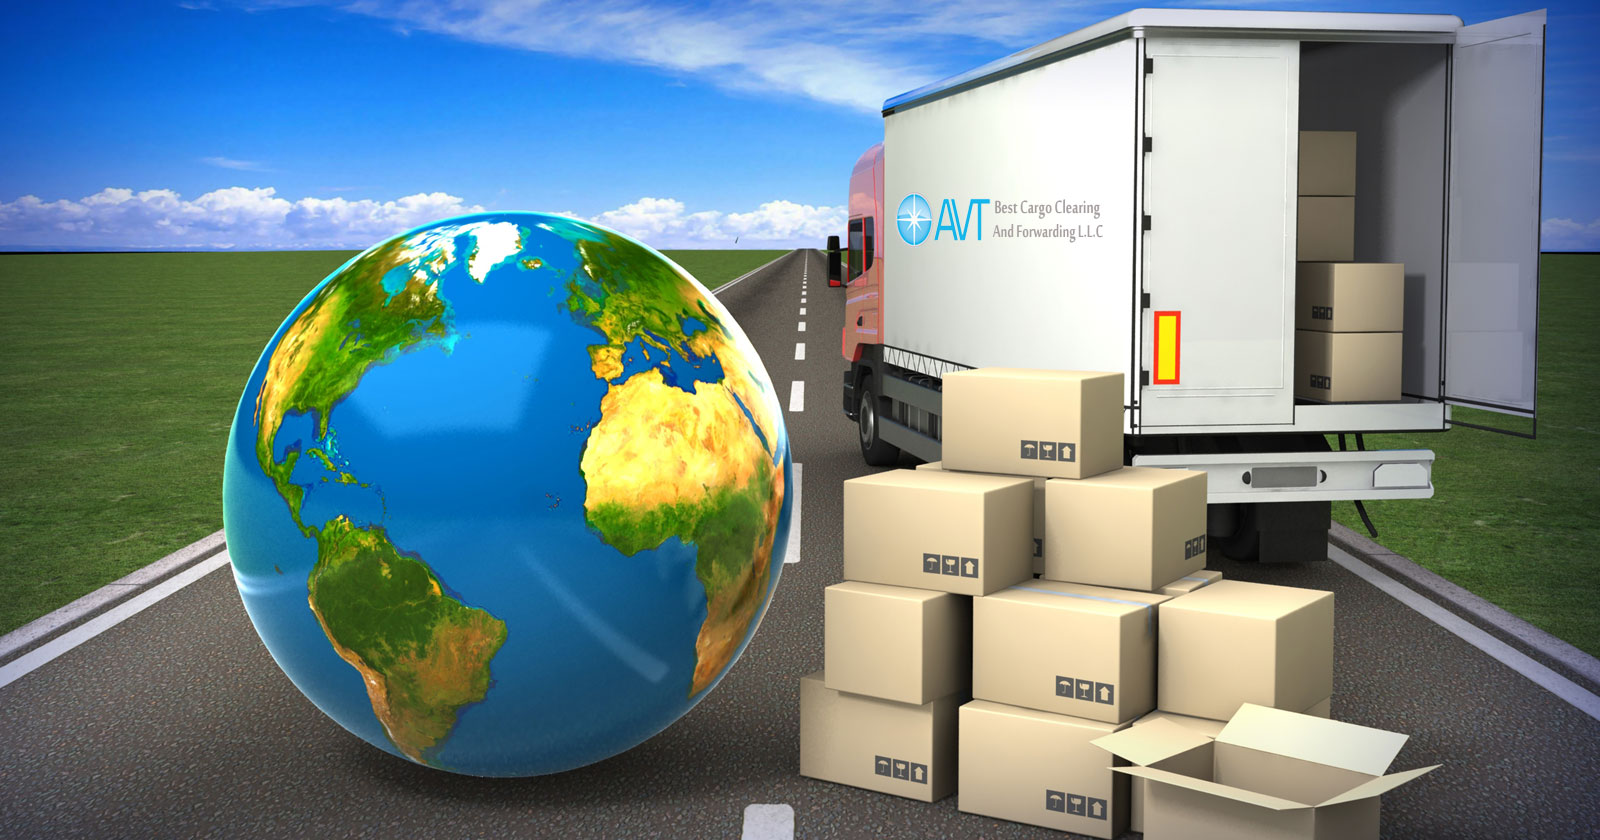 AVT Best Cargo Clearing & Forwarding L.L.C